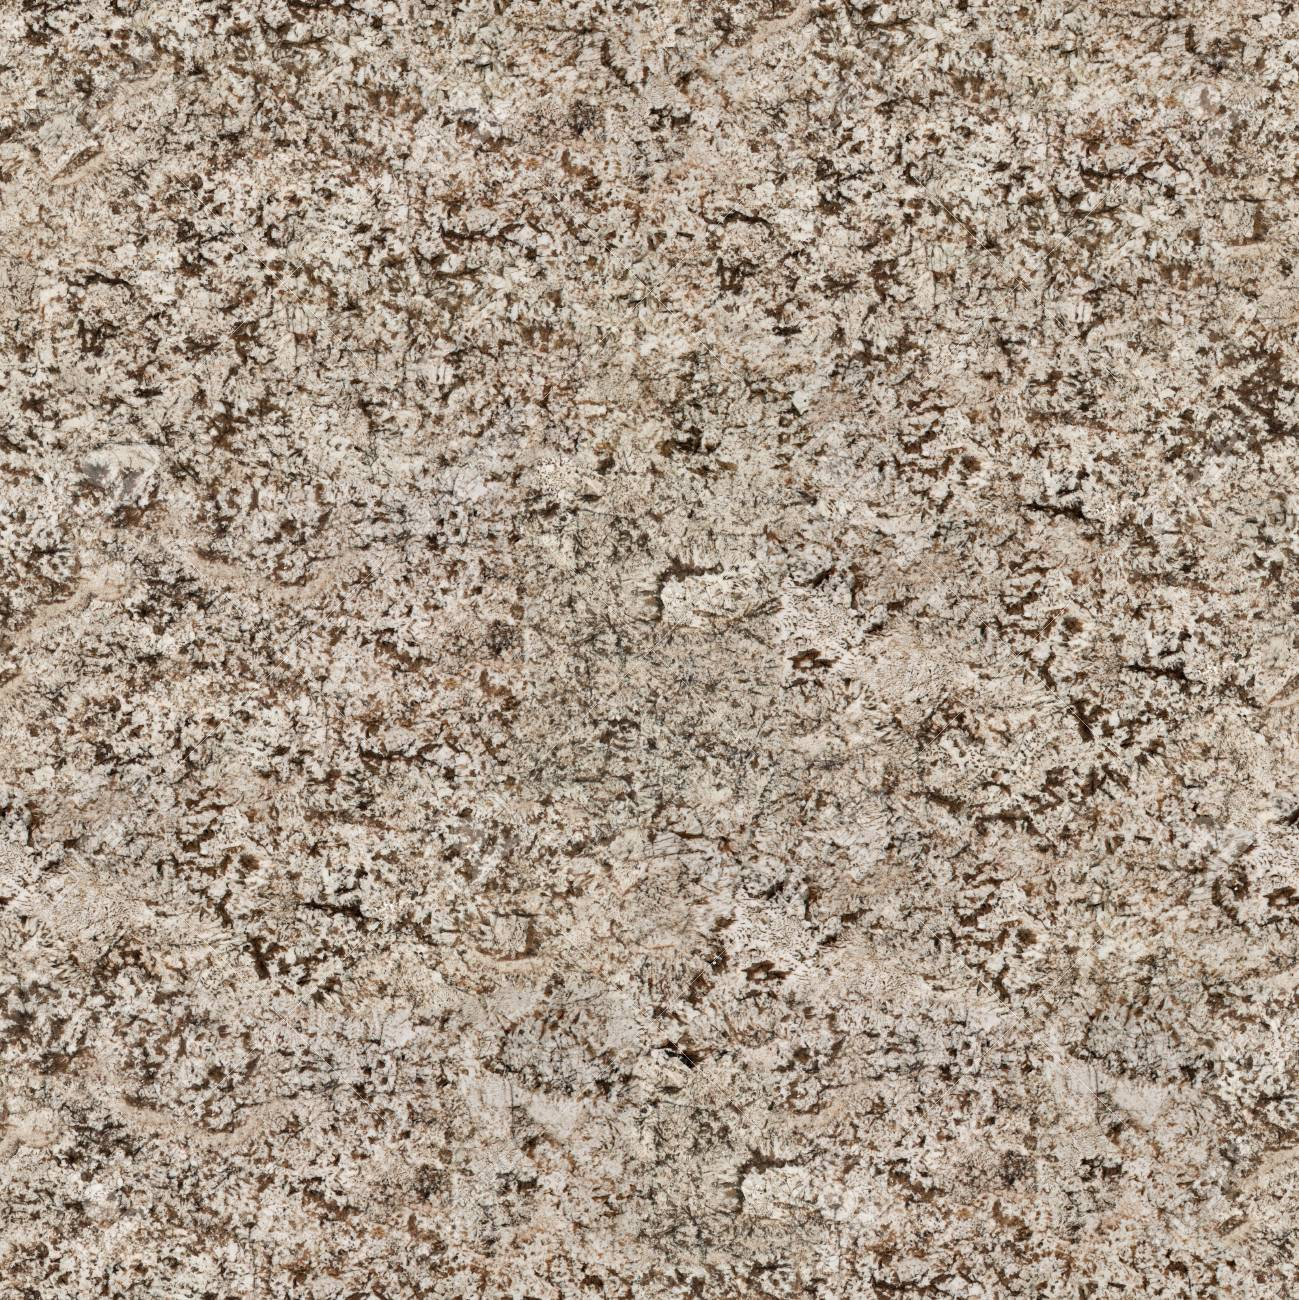 Luxuty Beige And Brown Granite Texture Seamless Square Background Stock Photo Picture And Royalty Free Image Image 83814854